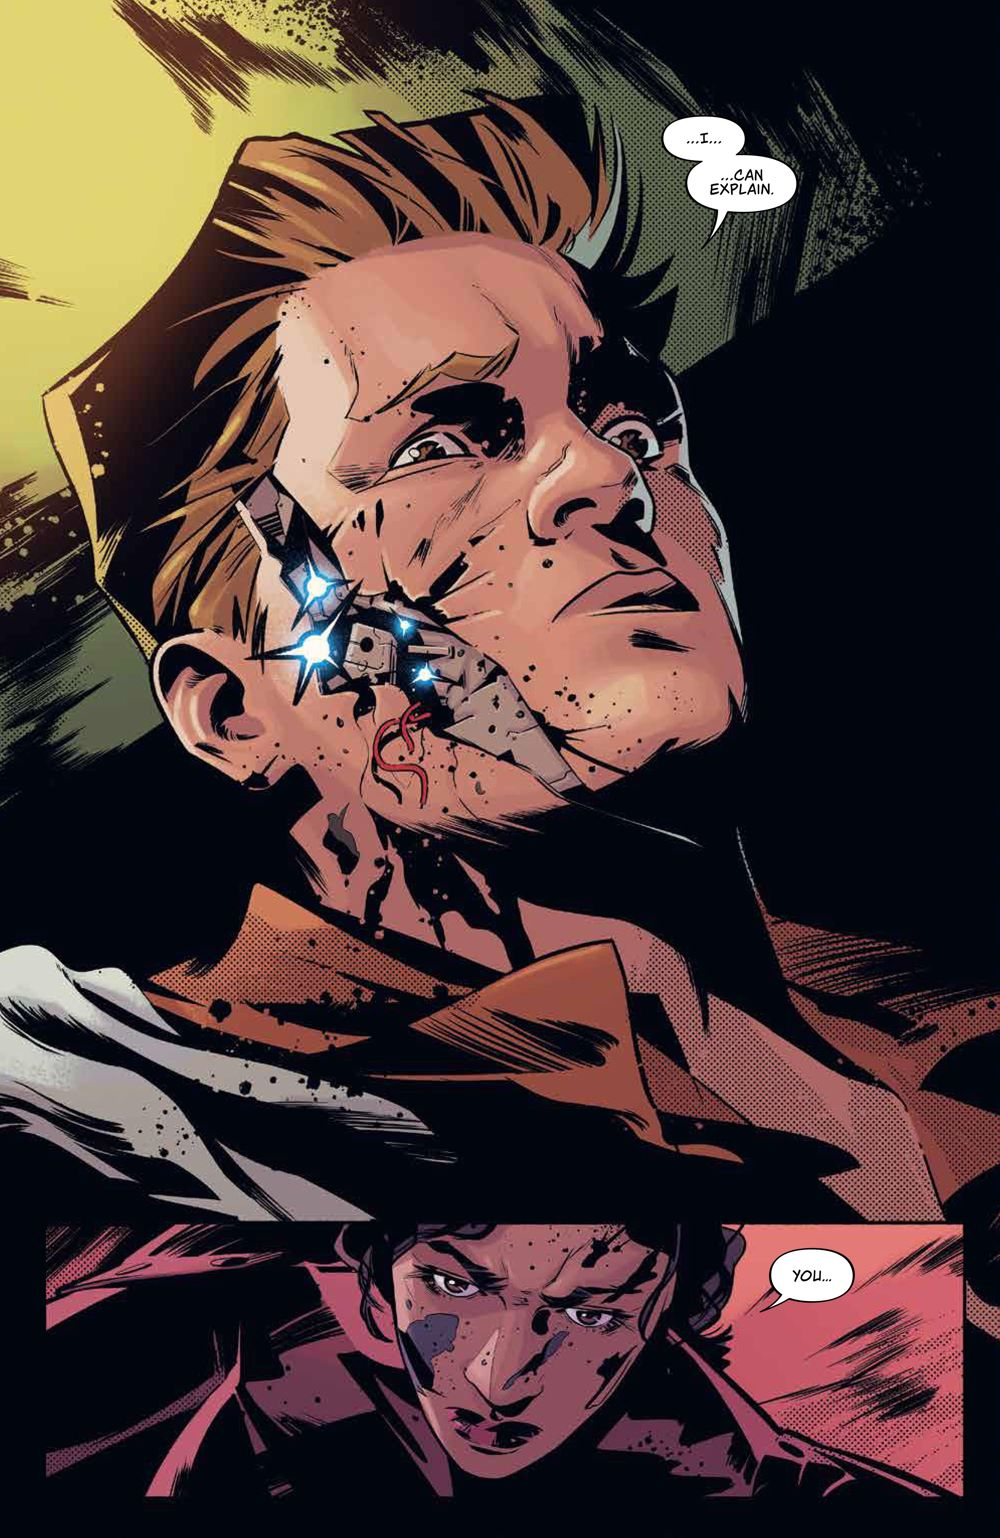 Firefly_026_PRESS_7 ComicList Previews: FIREFLY #26